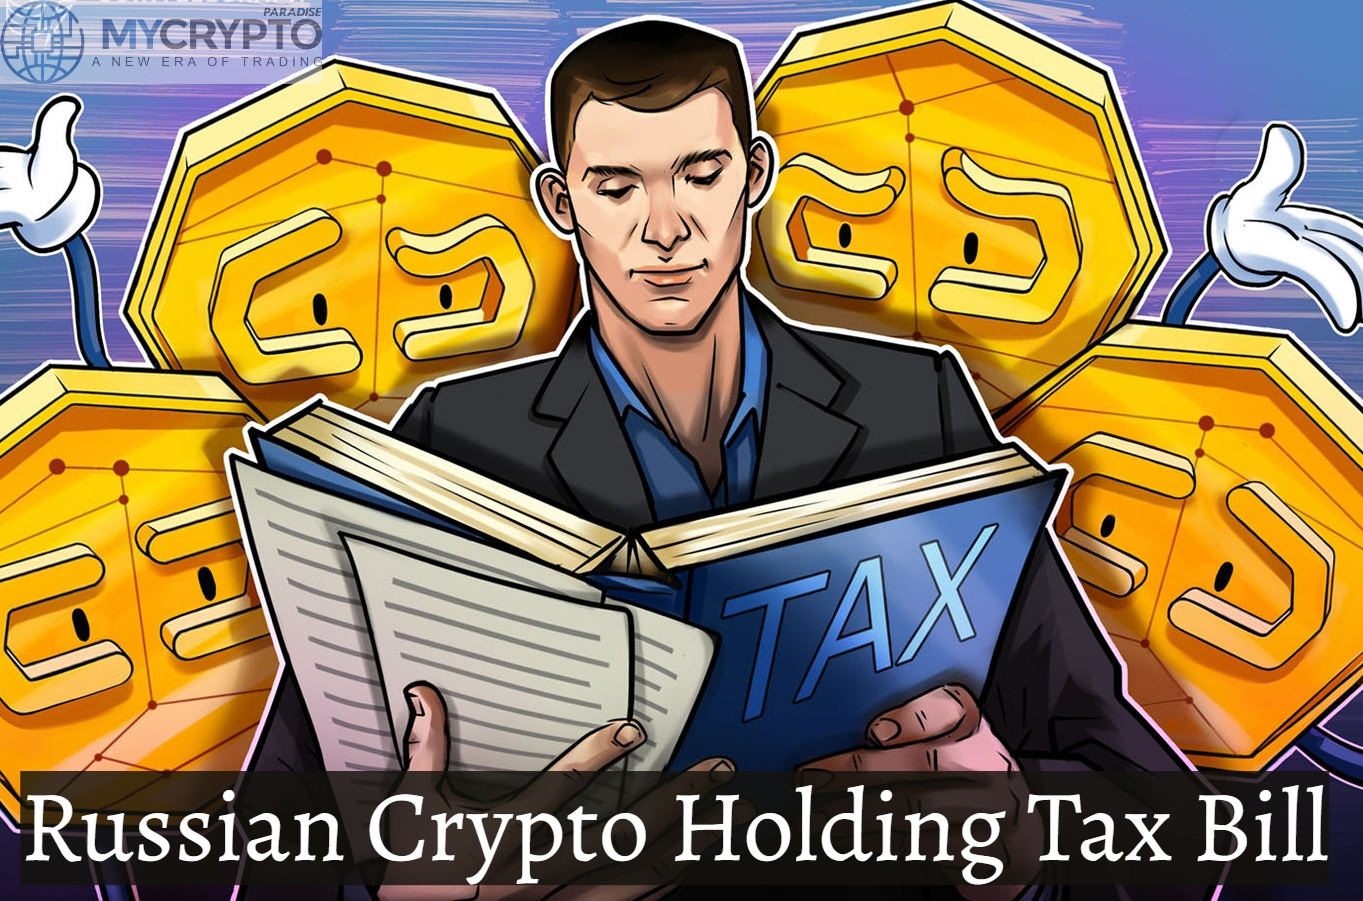 Russia Proposes a 3-Year Jail Term to Individuals Who Fail to Declare Crypto Holdings to the Tax Authority